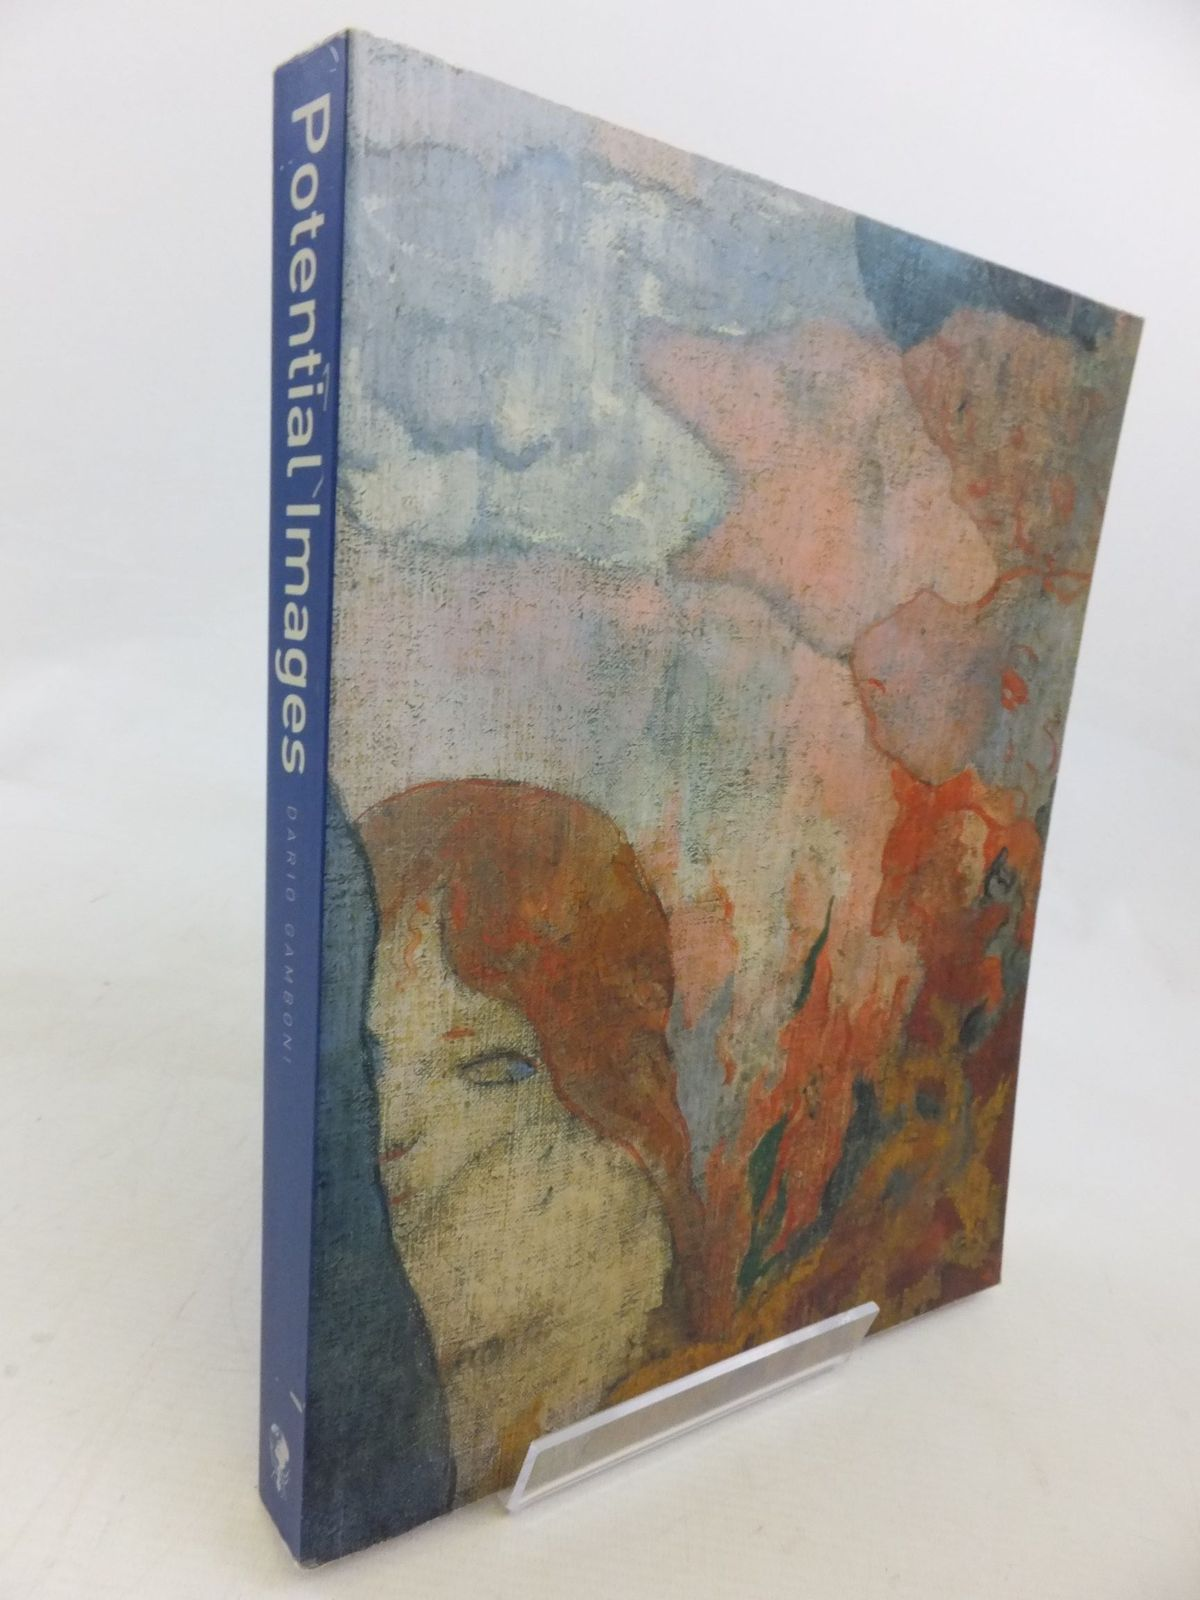 Photo of POTENTIAL IMAGES AMBIGUITY AND INDETERMINACY IN MODERN ART written by Gamboni, Dario published by Reaktion Books (STOCK CODE: 2116312)  for sale by Stella & Rose's Books